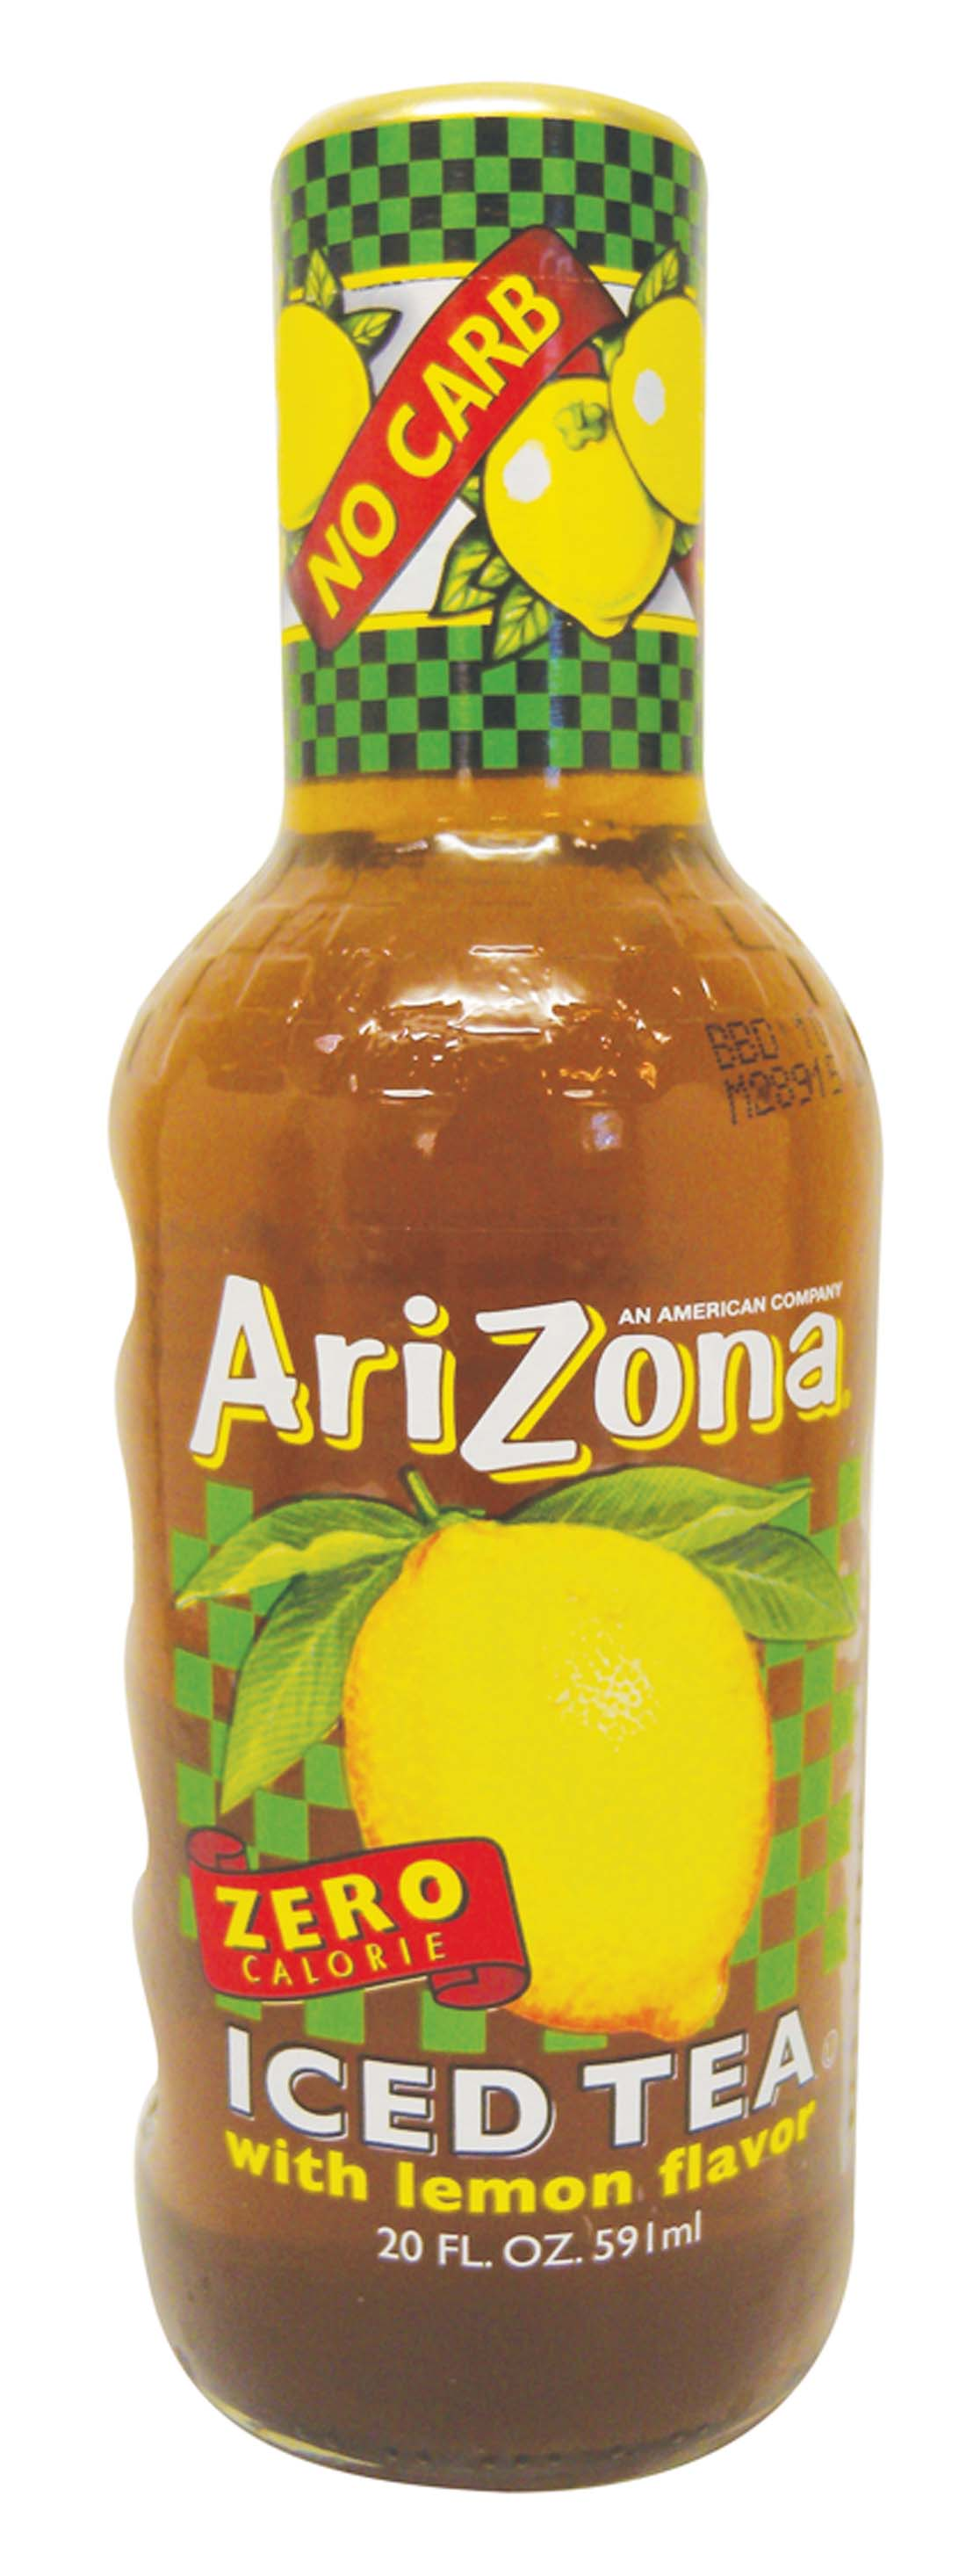 View ARIZONA ICED TEA 20 OZ GLASS BOTTLE ZERO CALORIE LEMON